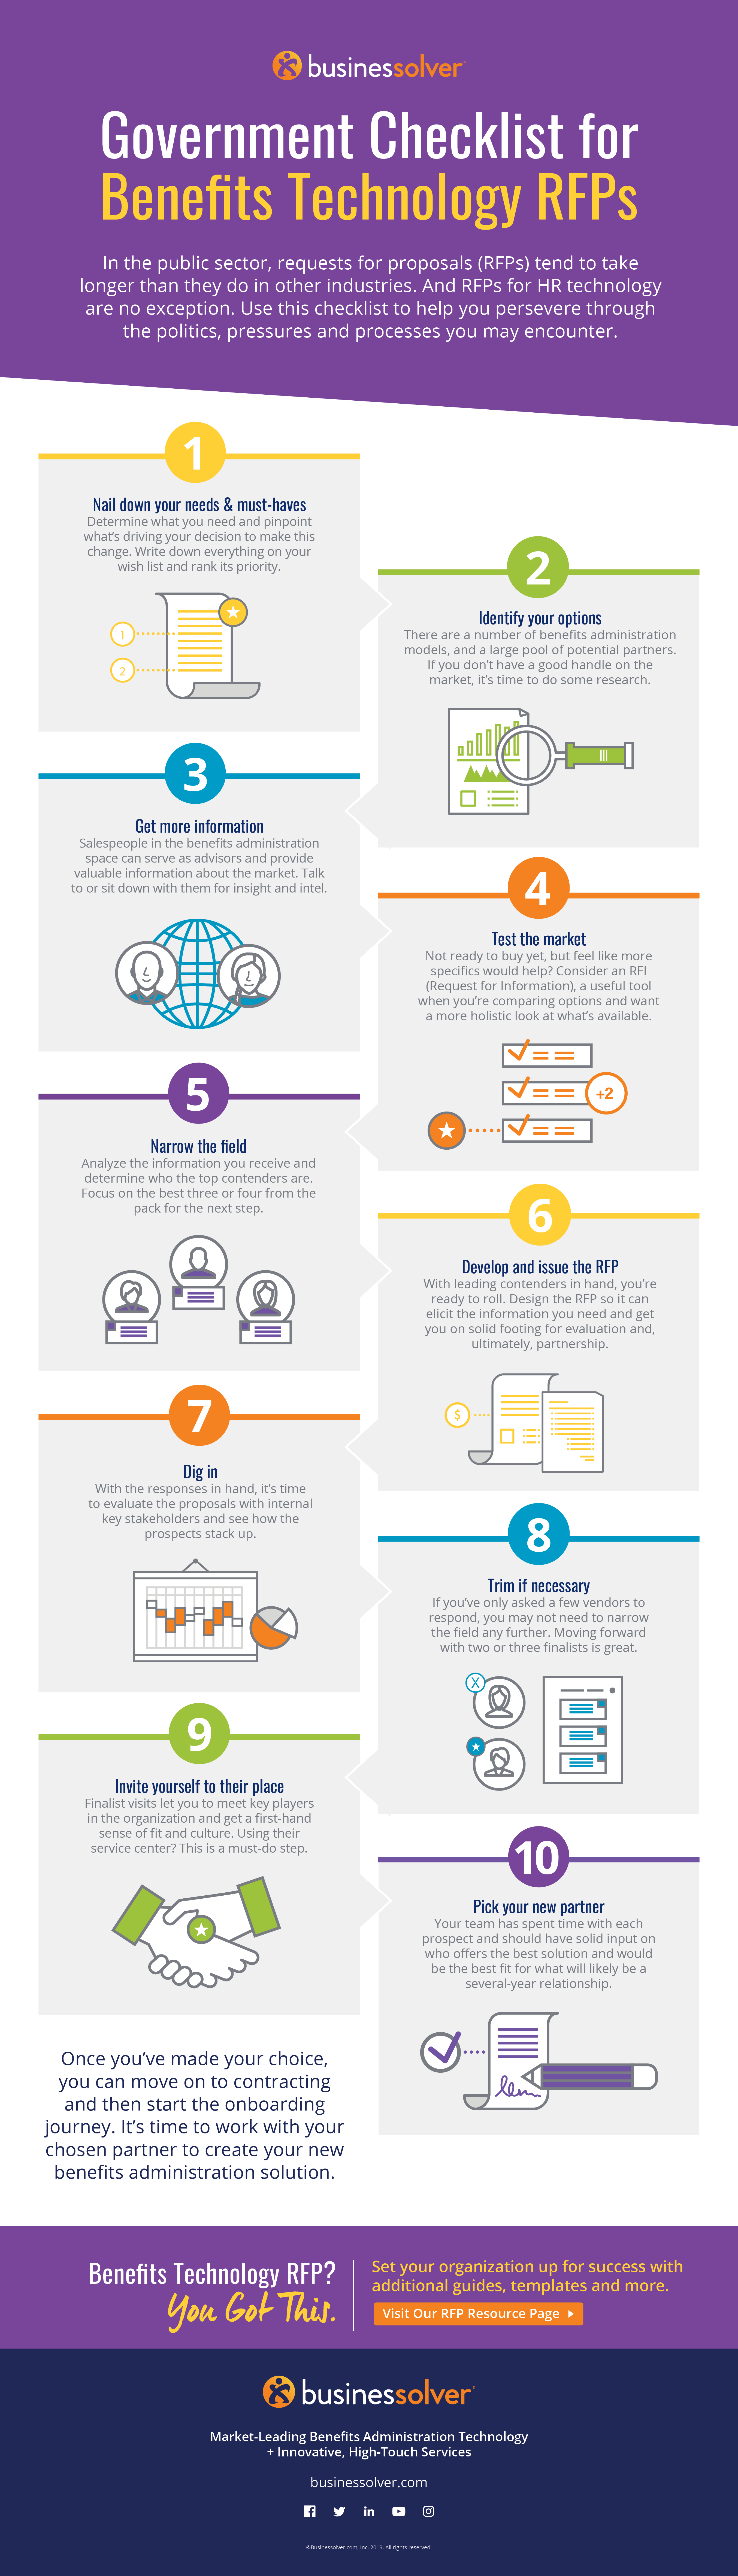 businessolver-10-steps-rfp-public-sector-infographic